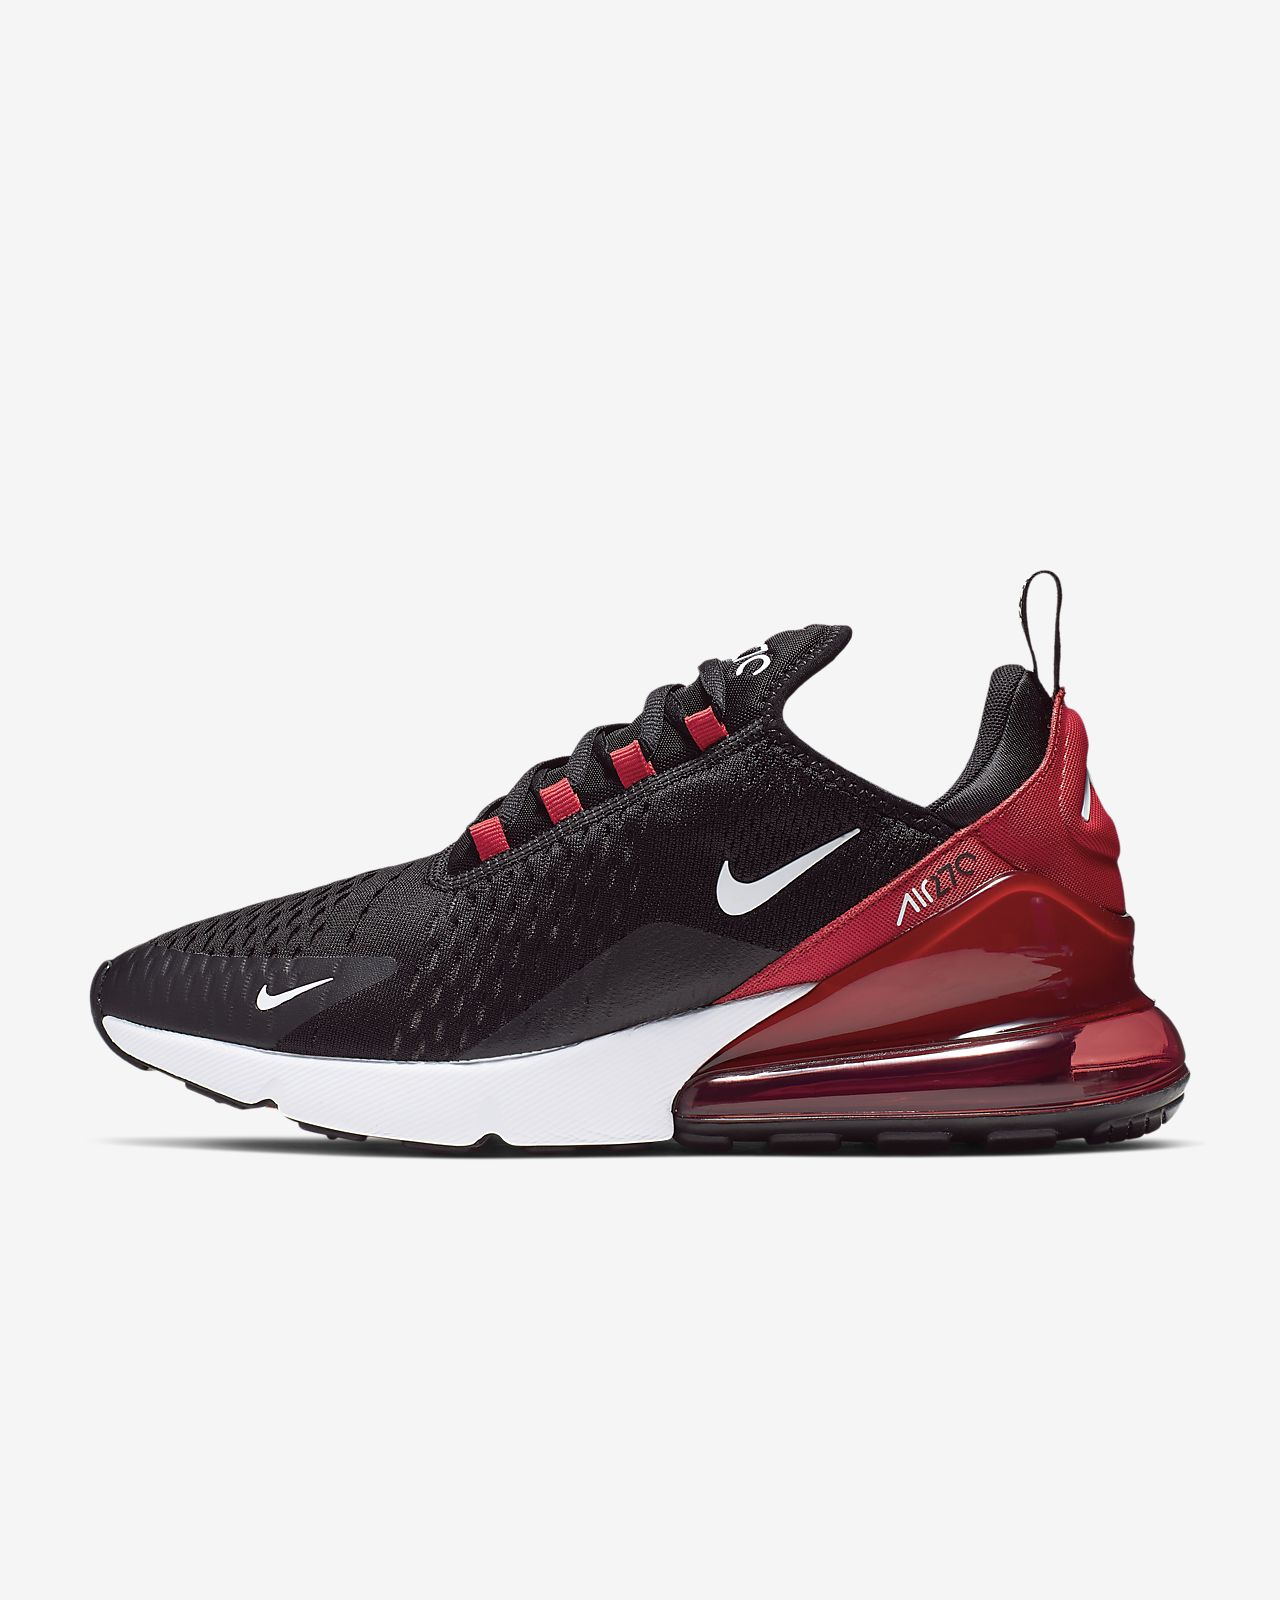 f124daf3e Nike Air Max 270 Men s Shoe. Nike.com GB